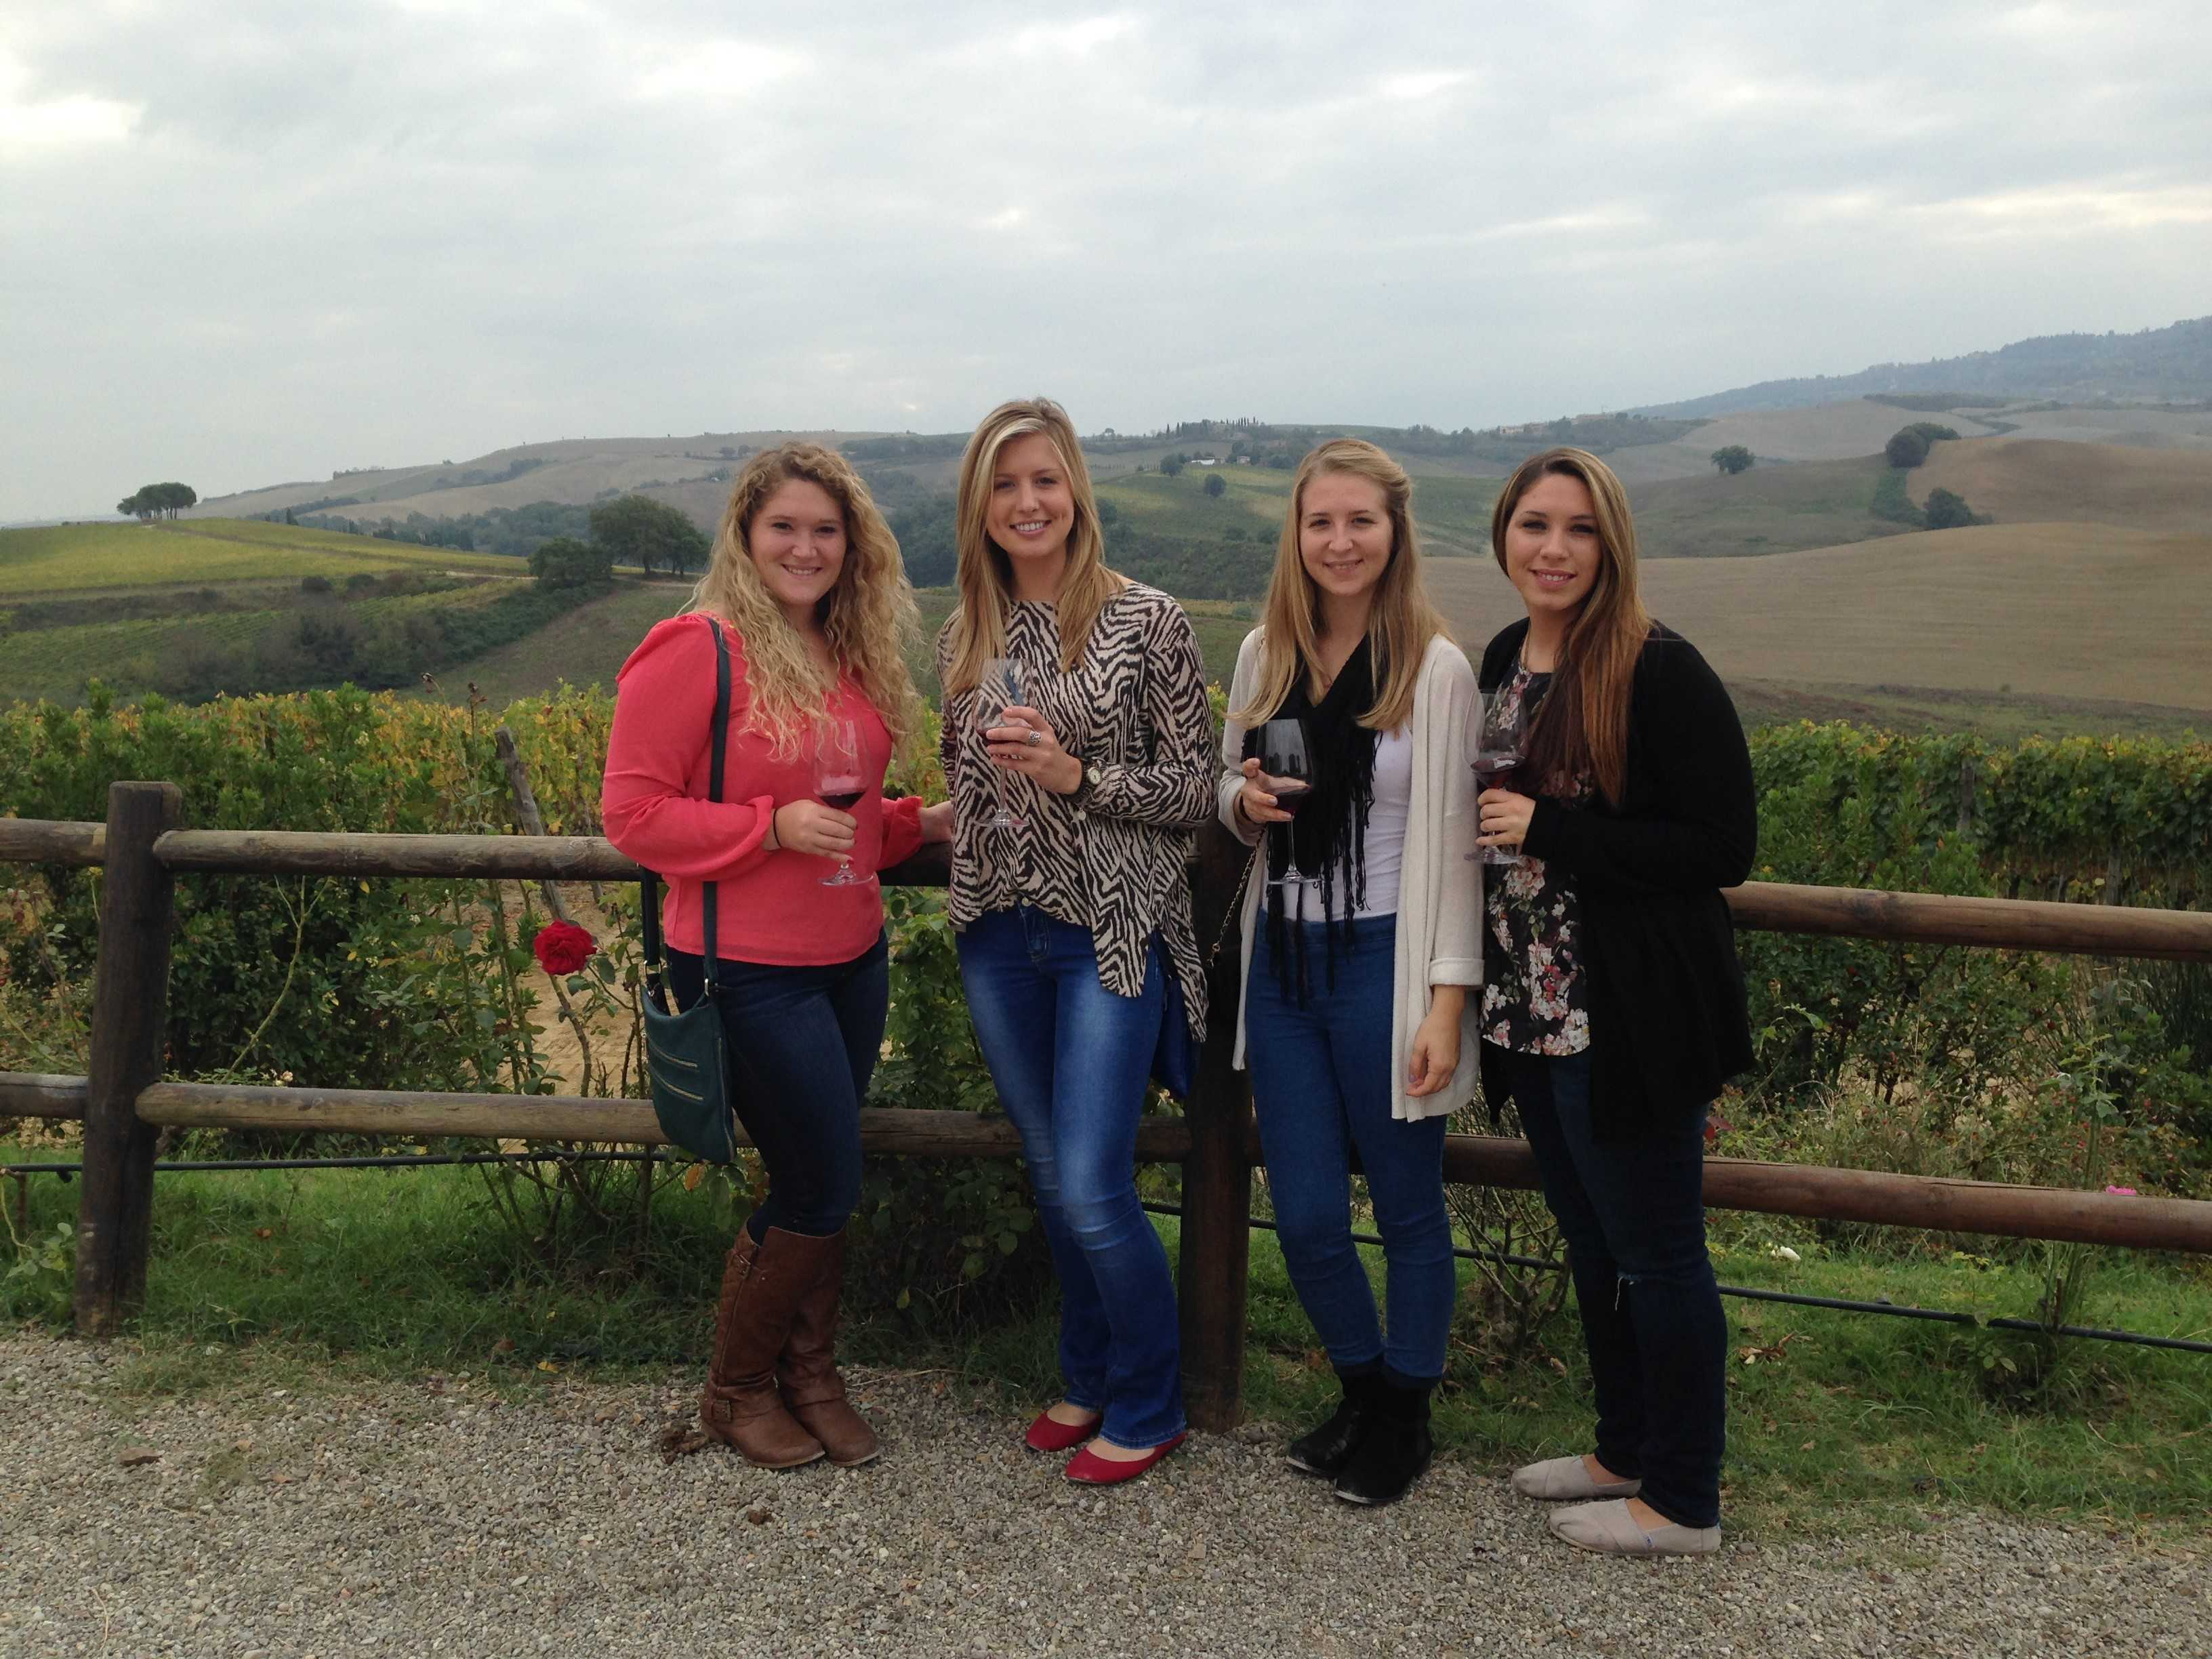 Students in Italy enjoy wine tasting on a Tuscany hillside  (Photo by Ashley Arminio/Charger Bulletin photo)